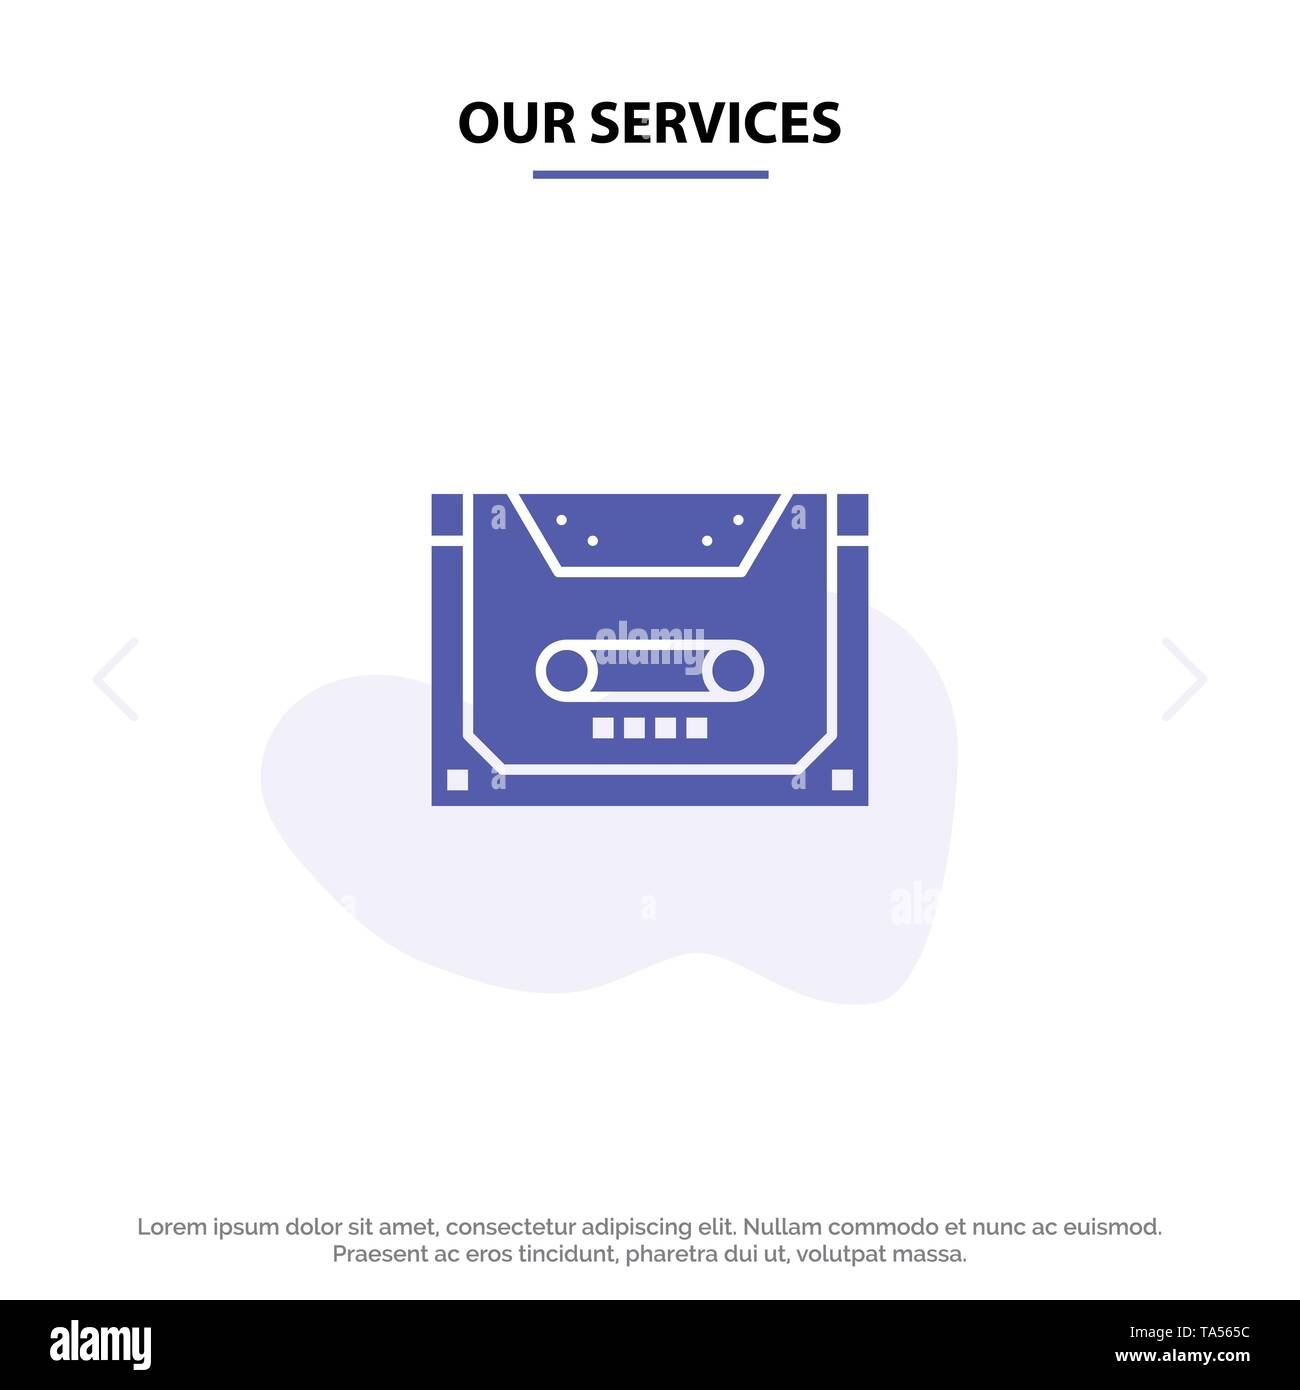 Our Services Analog, Audio, Cassette, Compact, Deck Solid Glyph Icon Web card Template - Stock Image